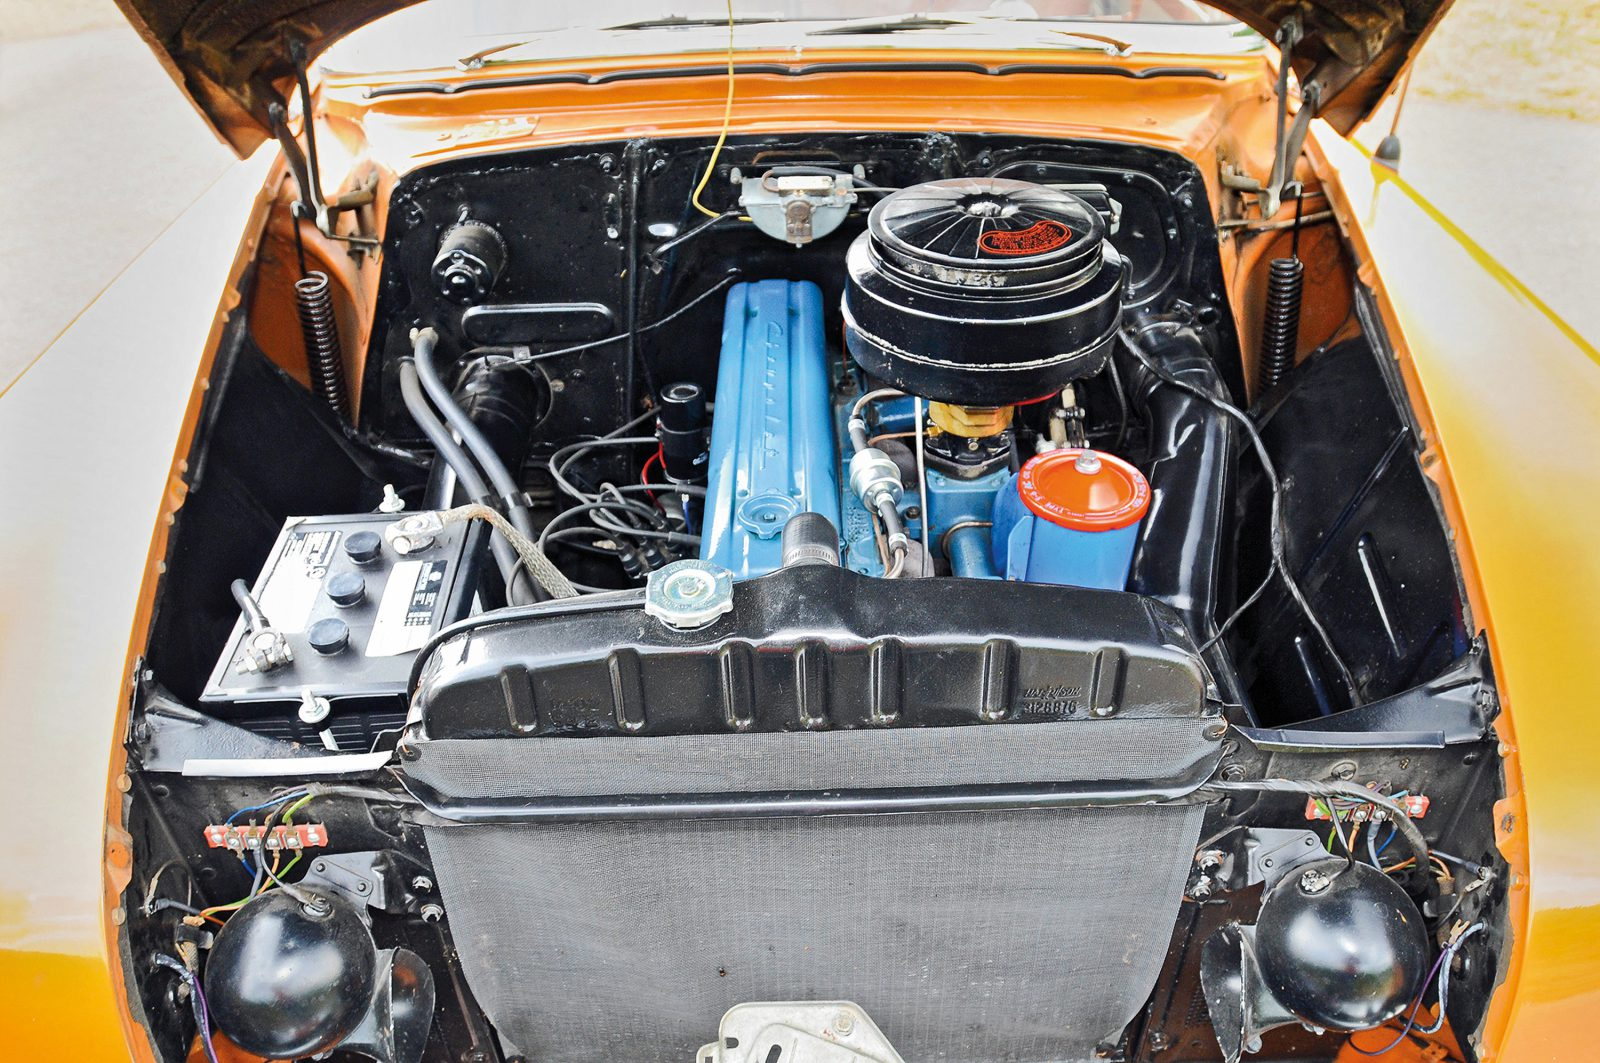 Chevrolet Bel Air motor